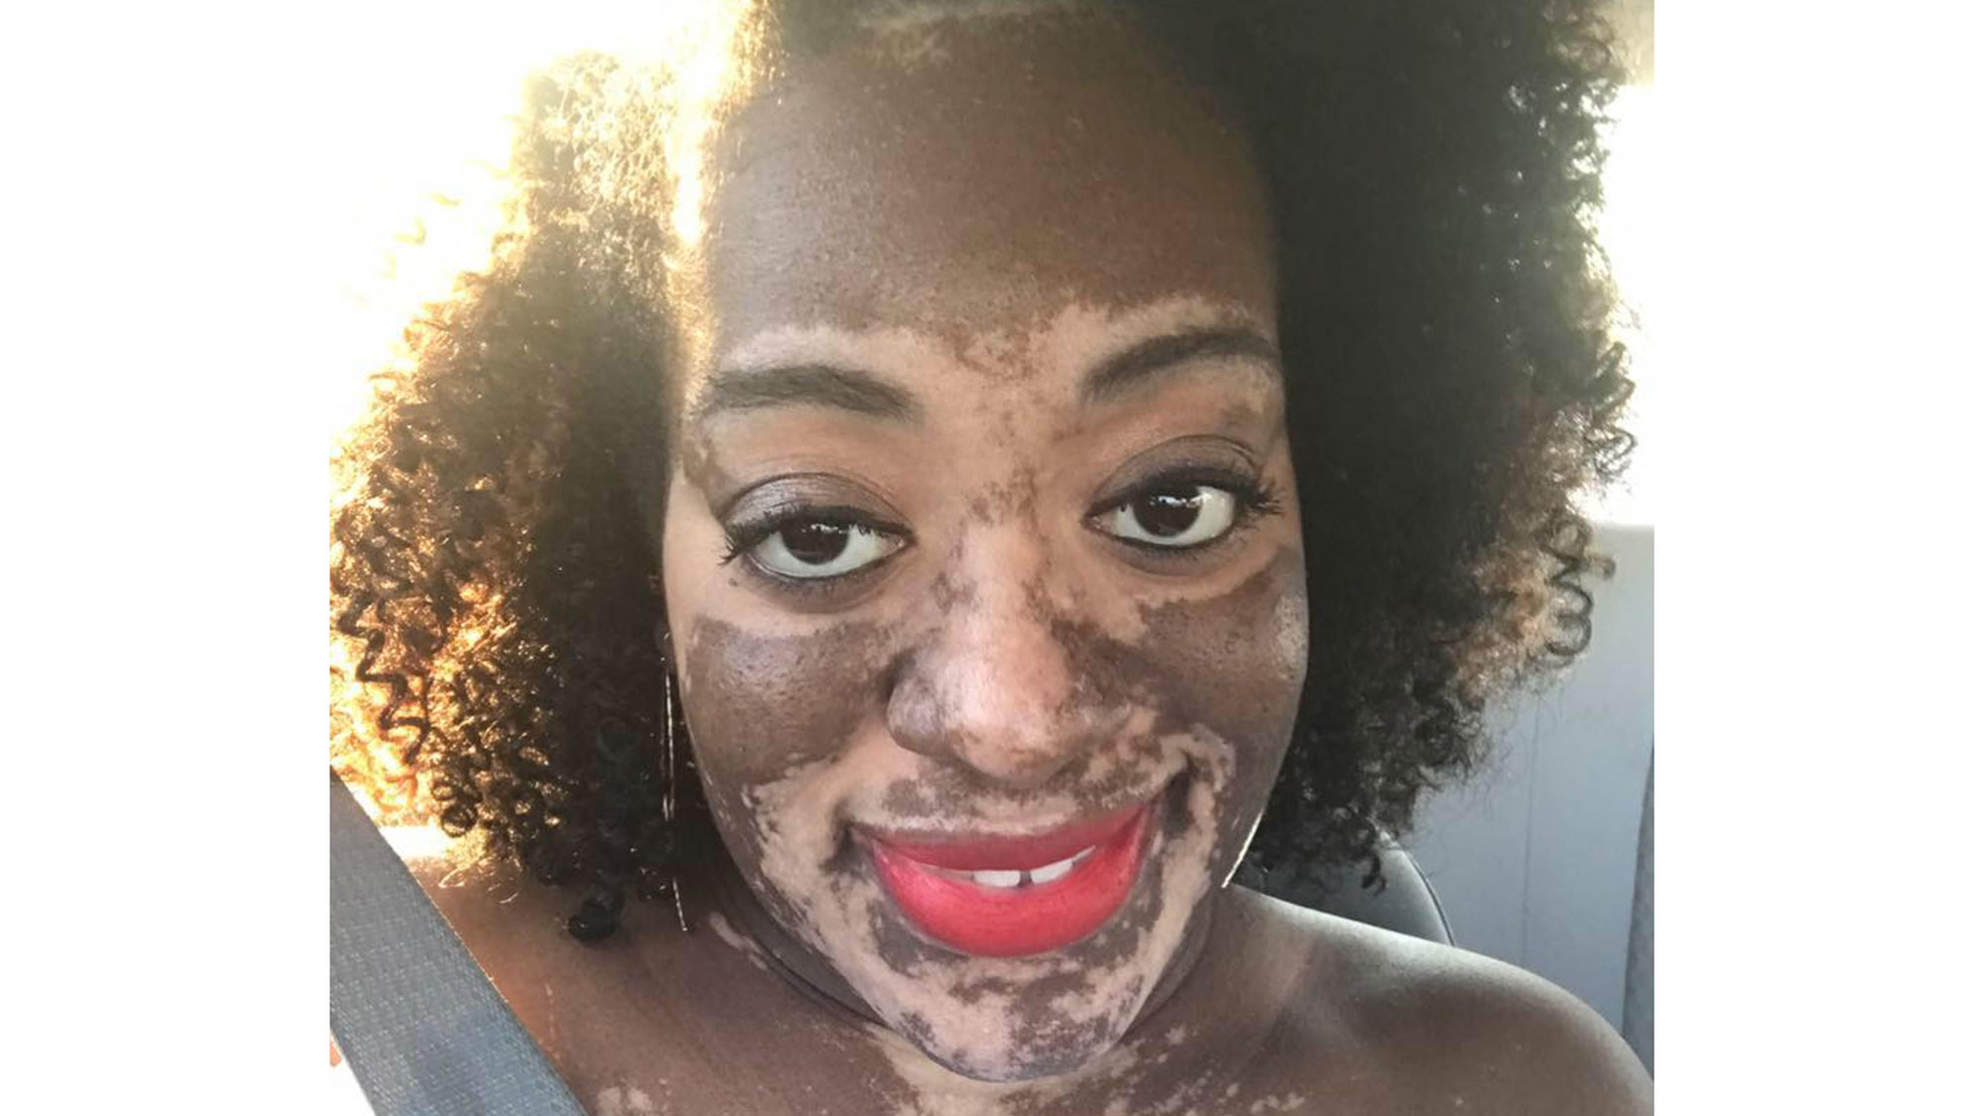 Bride Struggles with Vitiligo Before Her Wedding: 'It Has Made Me a Stronger Person'